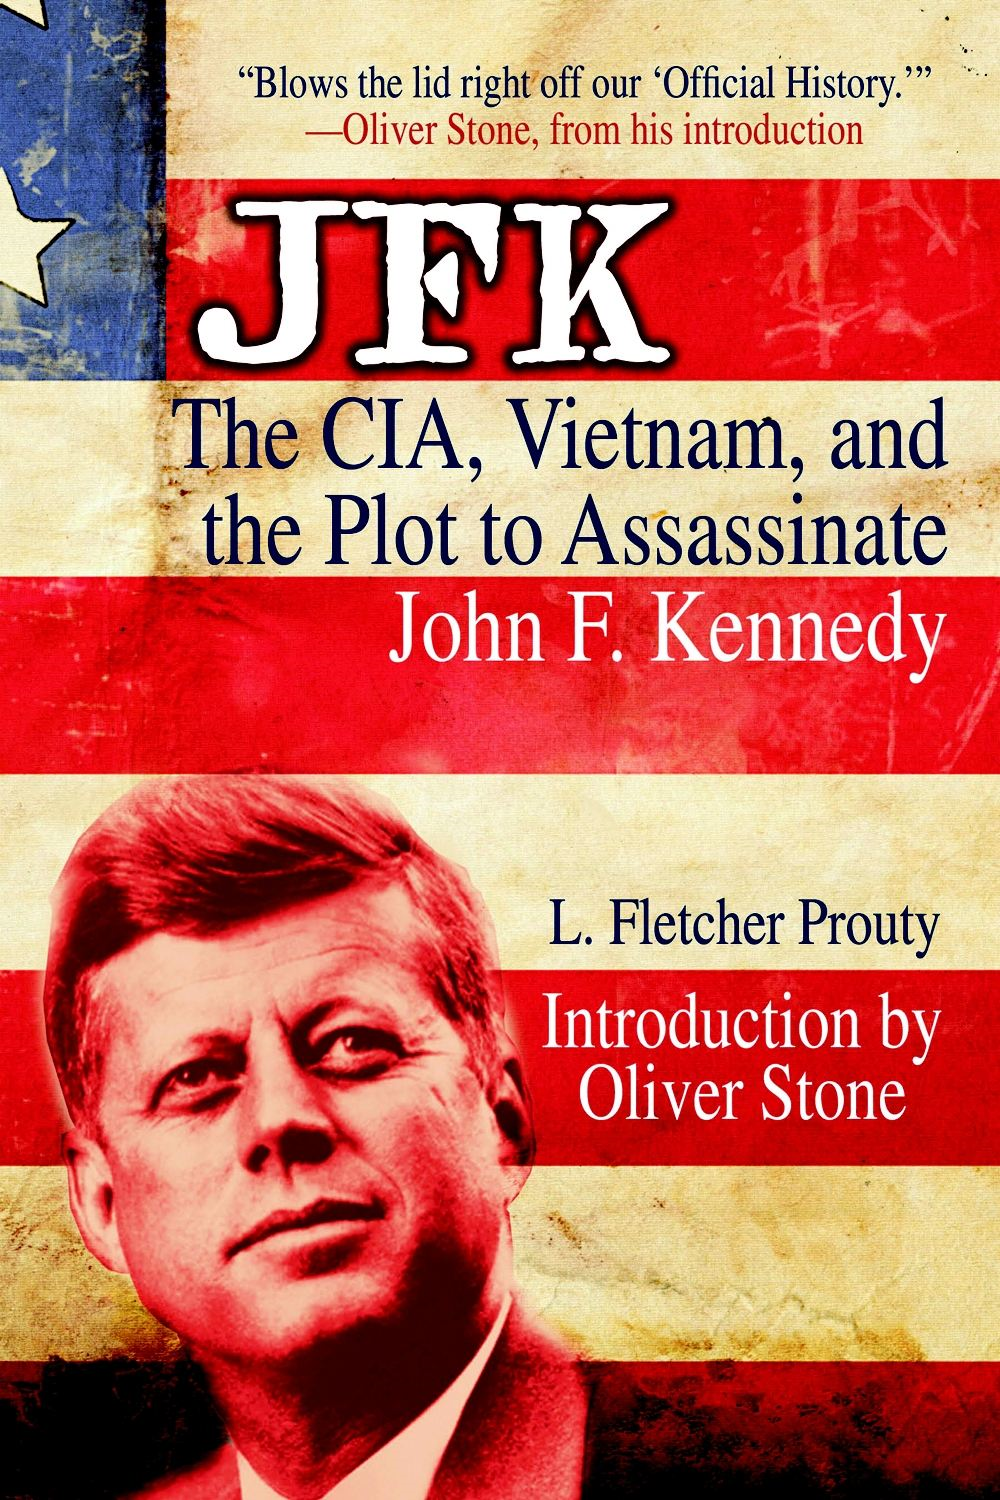 JFK: The CIA, Vietnam, and the Plot to Assassinate John F. Kennedy By: L. Fletcher Prouty